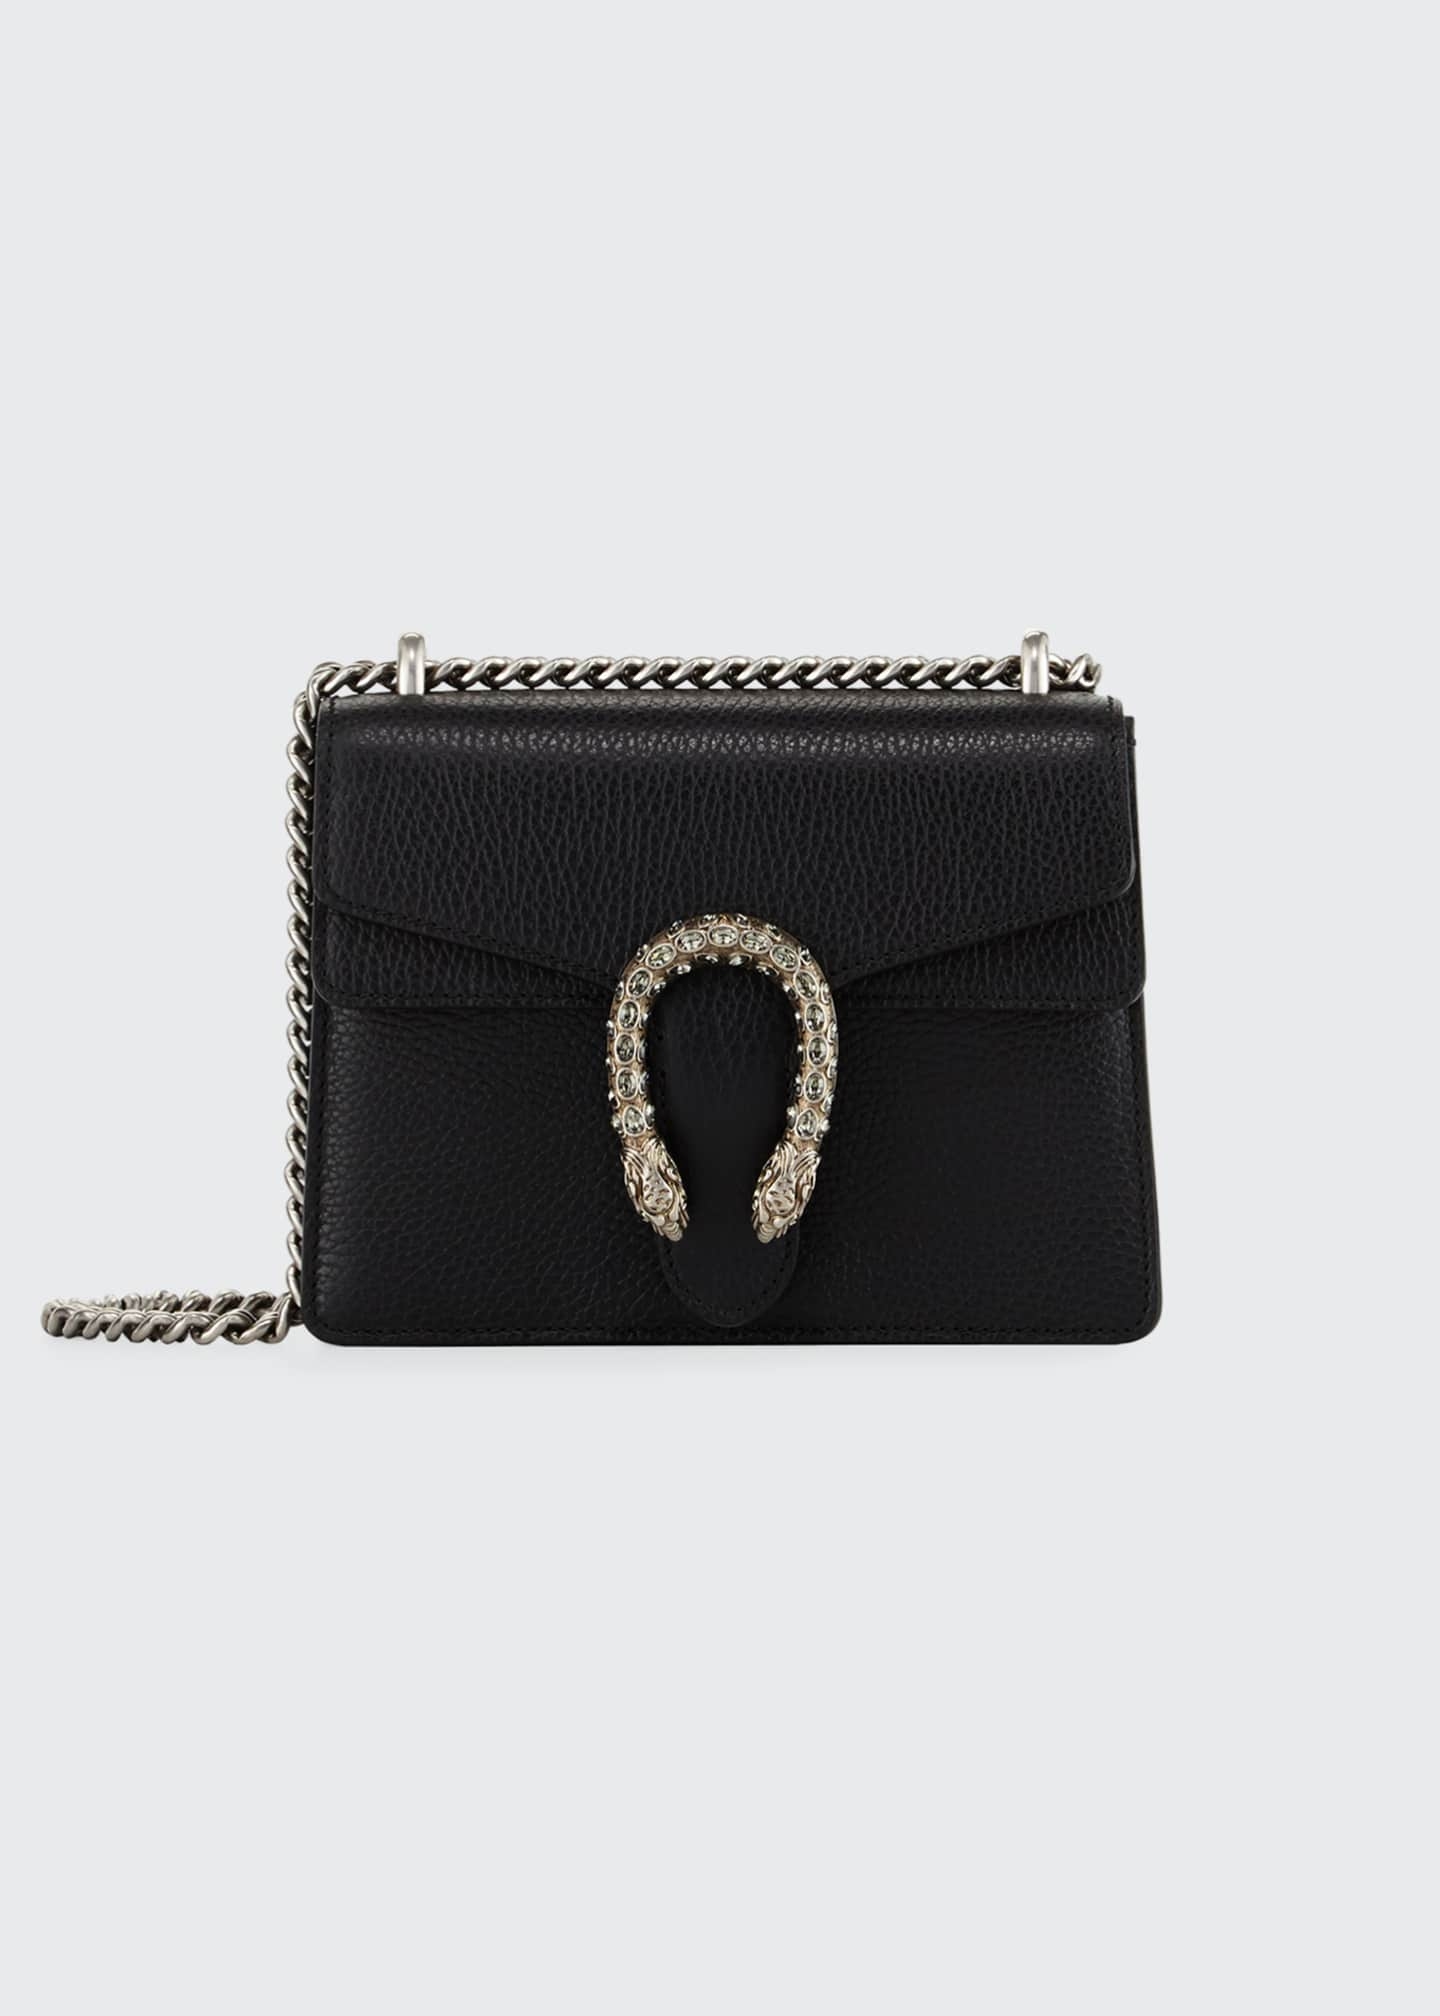 Gucci Dionysus Leather Crystal Mini Bag